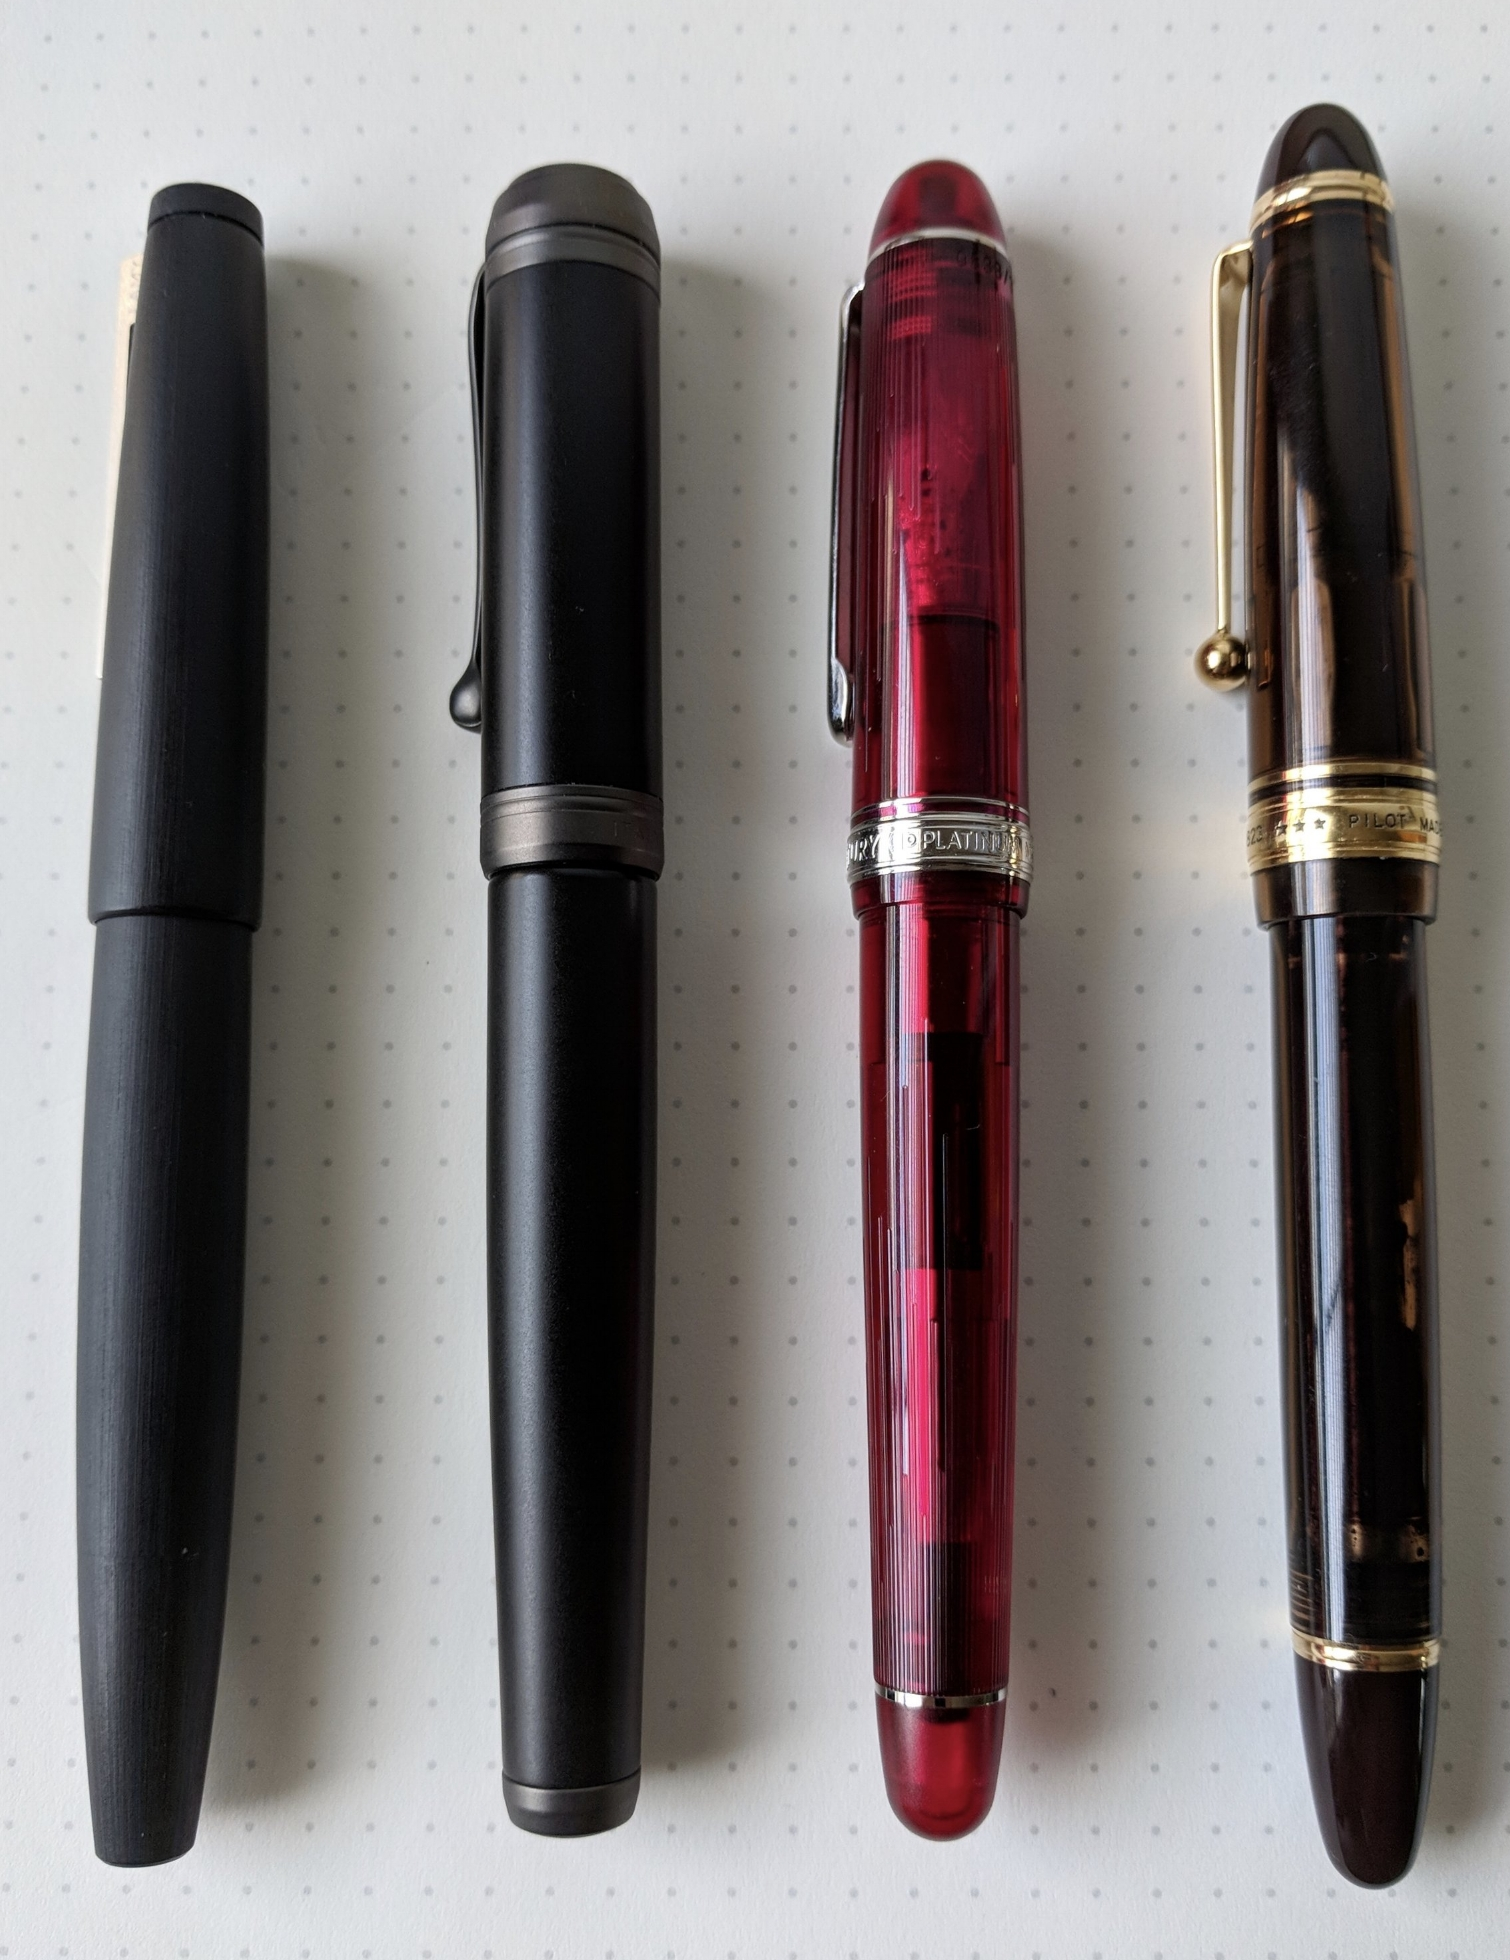 Another size comparison, from left:  Lamy 2000 , Aurora Talentum Black Ops,  Platinum 3776  (Shungyo limited edition), and  Pilot Custom 823 .